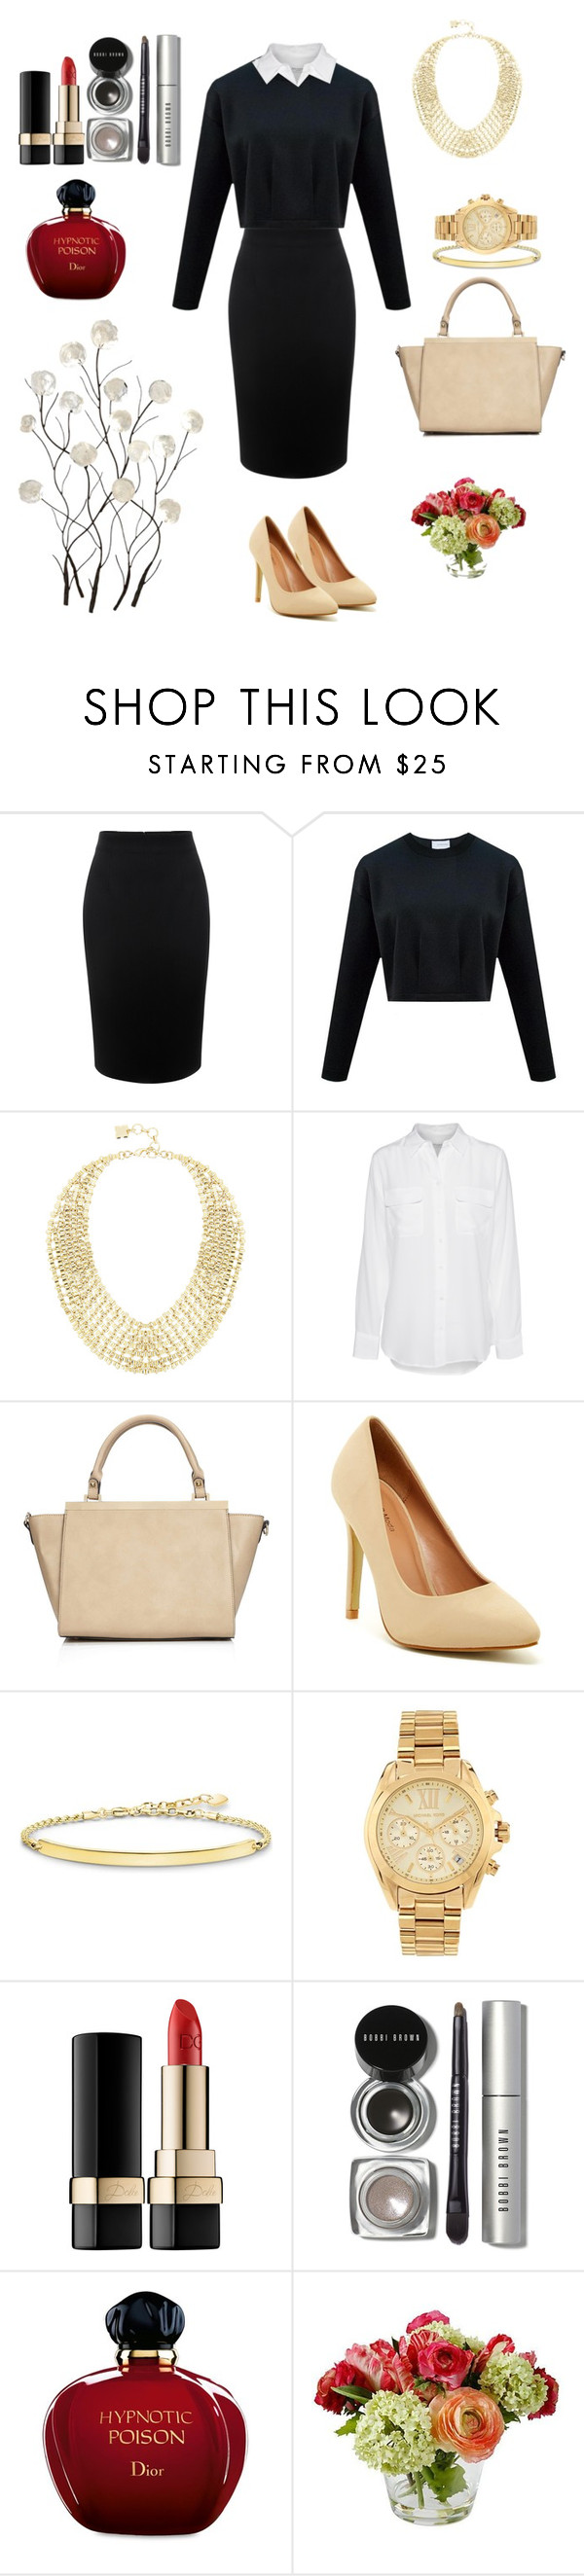 """Untitled #55"" by ivasiukyana ❤ liked on Polyvore featuring Alexander McQueen, BCBGMAXAZRIA, Equipment, Wallis, Top Guy, Thomas Sabo, Michael Kors, Dolce&Gabbana, Bobbi Brown Cosmetics and Christian Dior"